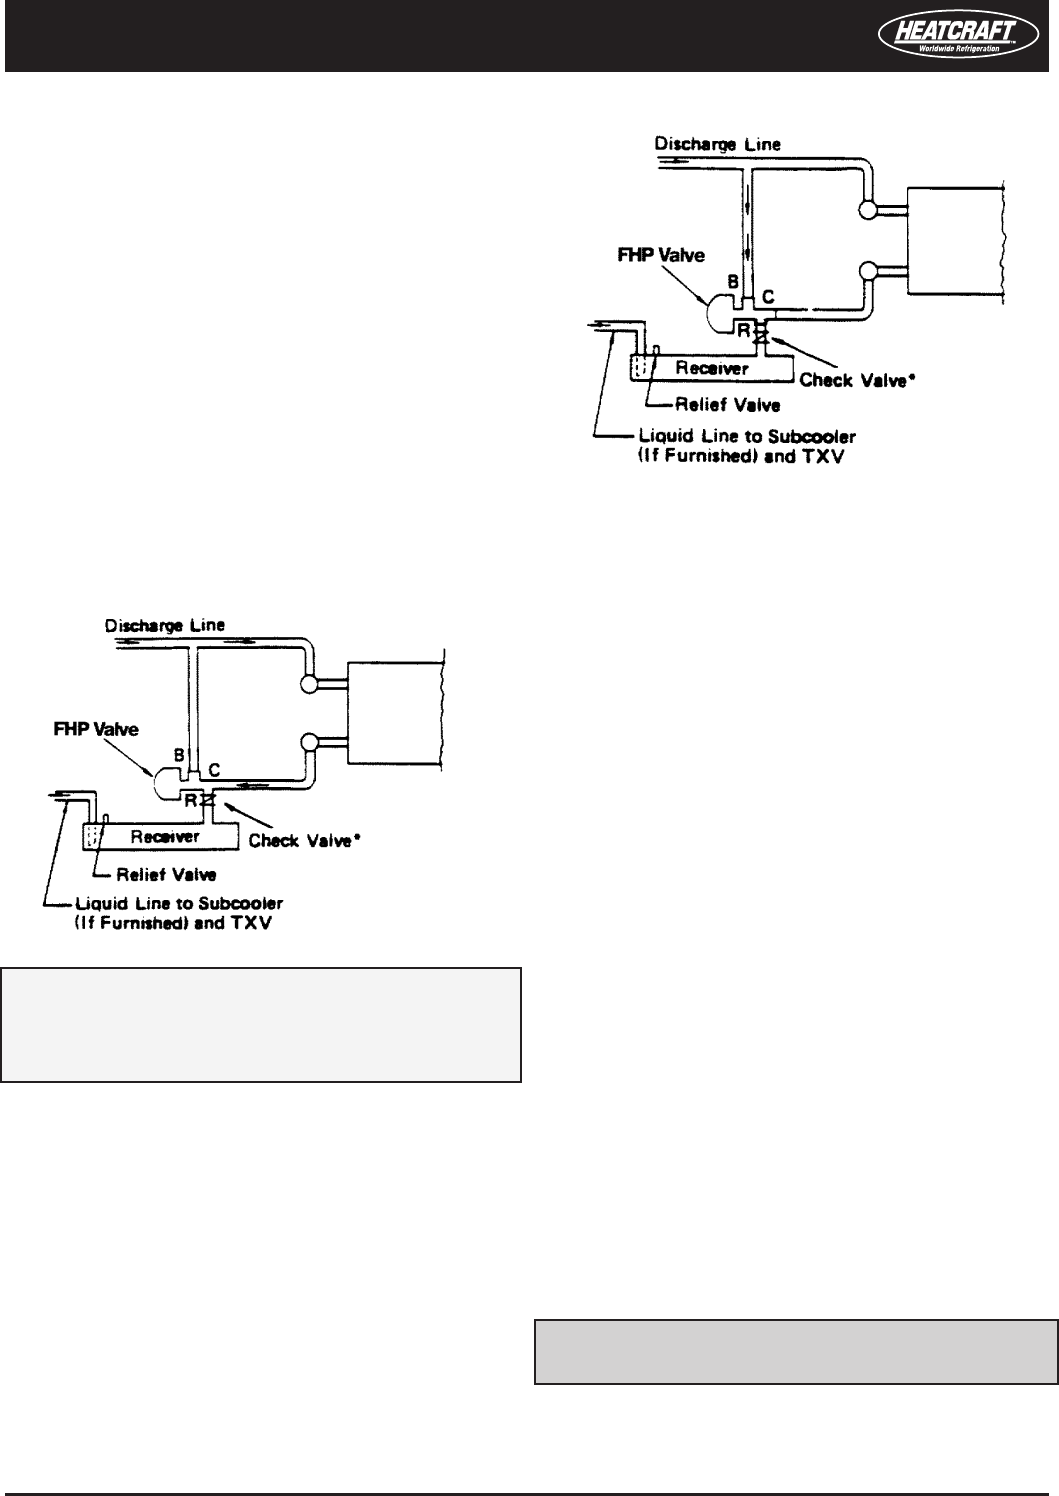 Manual Heatcraft 2007 Wiring The Jld 612 Pid Controller With Solid State Relay Eat Drink Diagram Used Refrigeration Units Array Page 9 Of Products Clothes Dryer 2500018 Rh Laundry Manualsonline Com